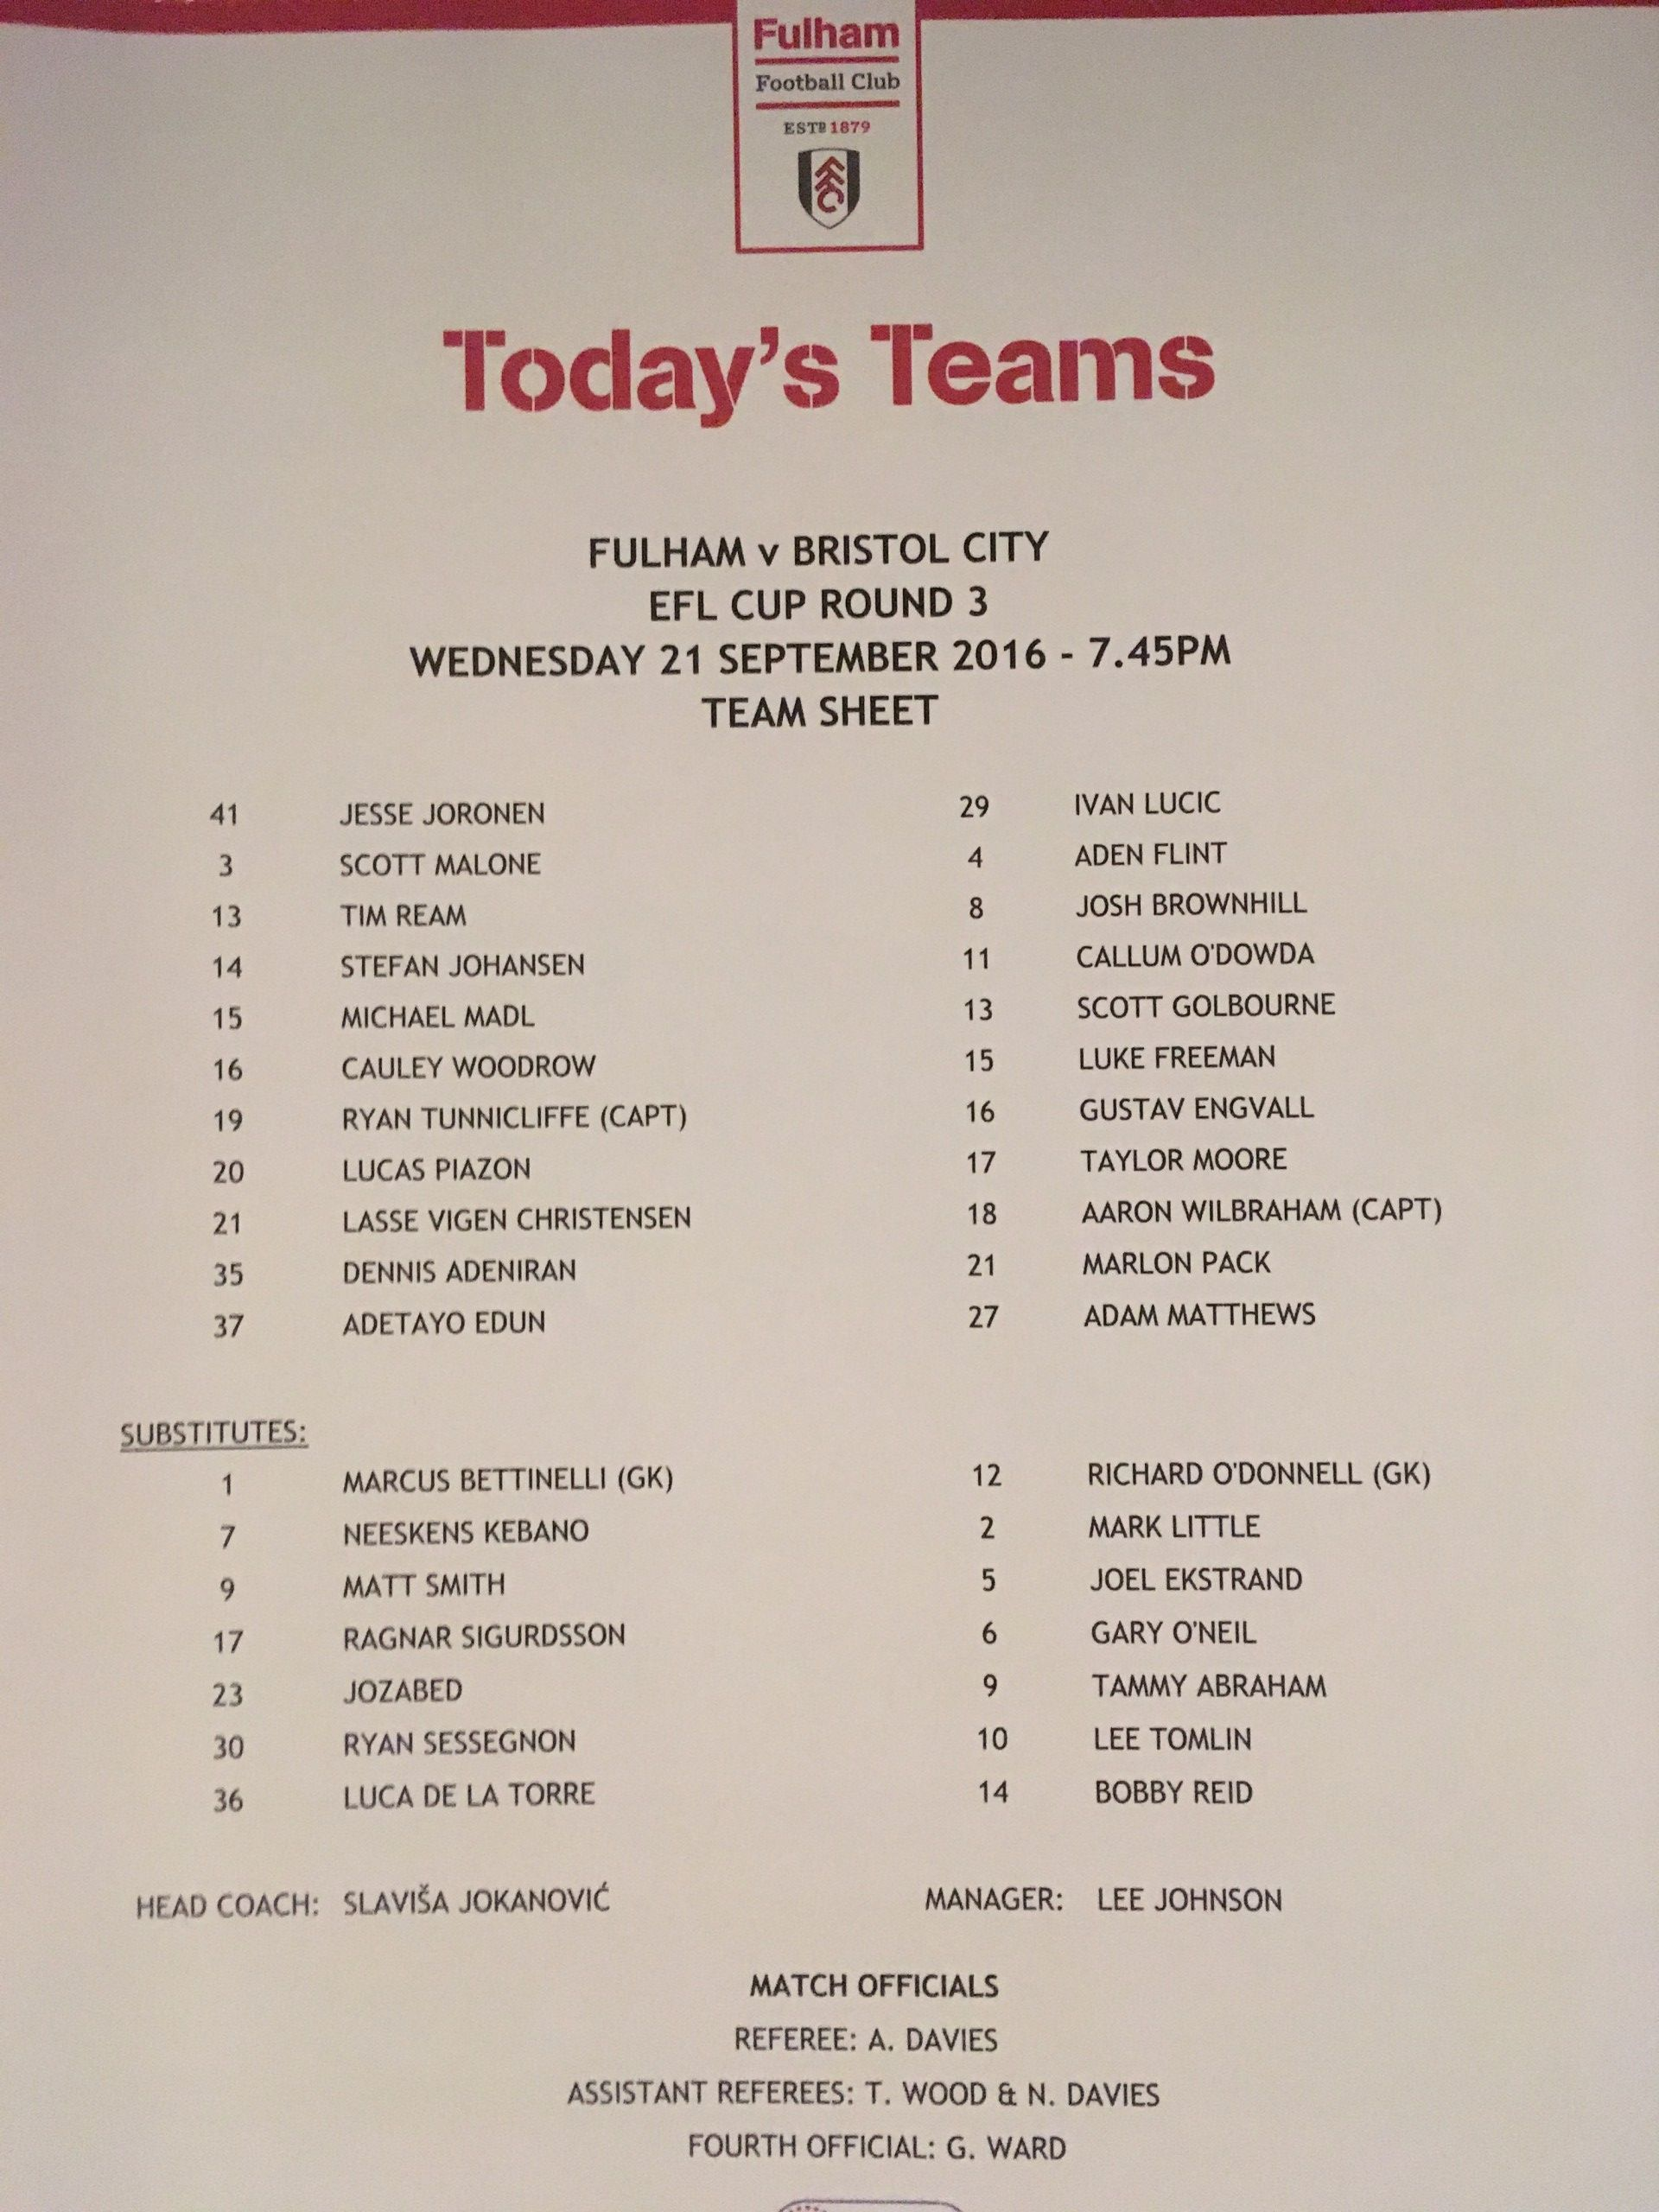 Fulham v Bristol City 21-09-2016 Team Sheet